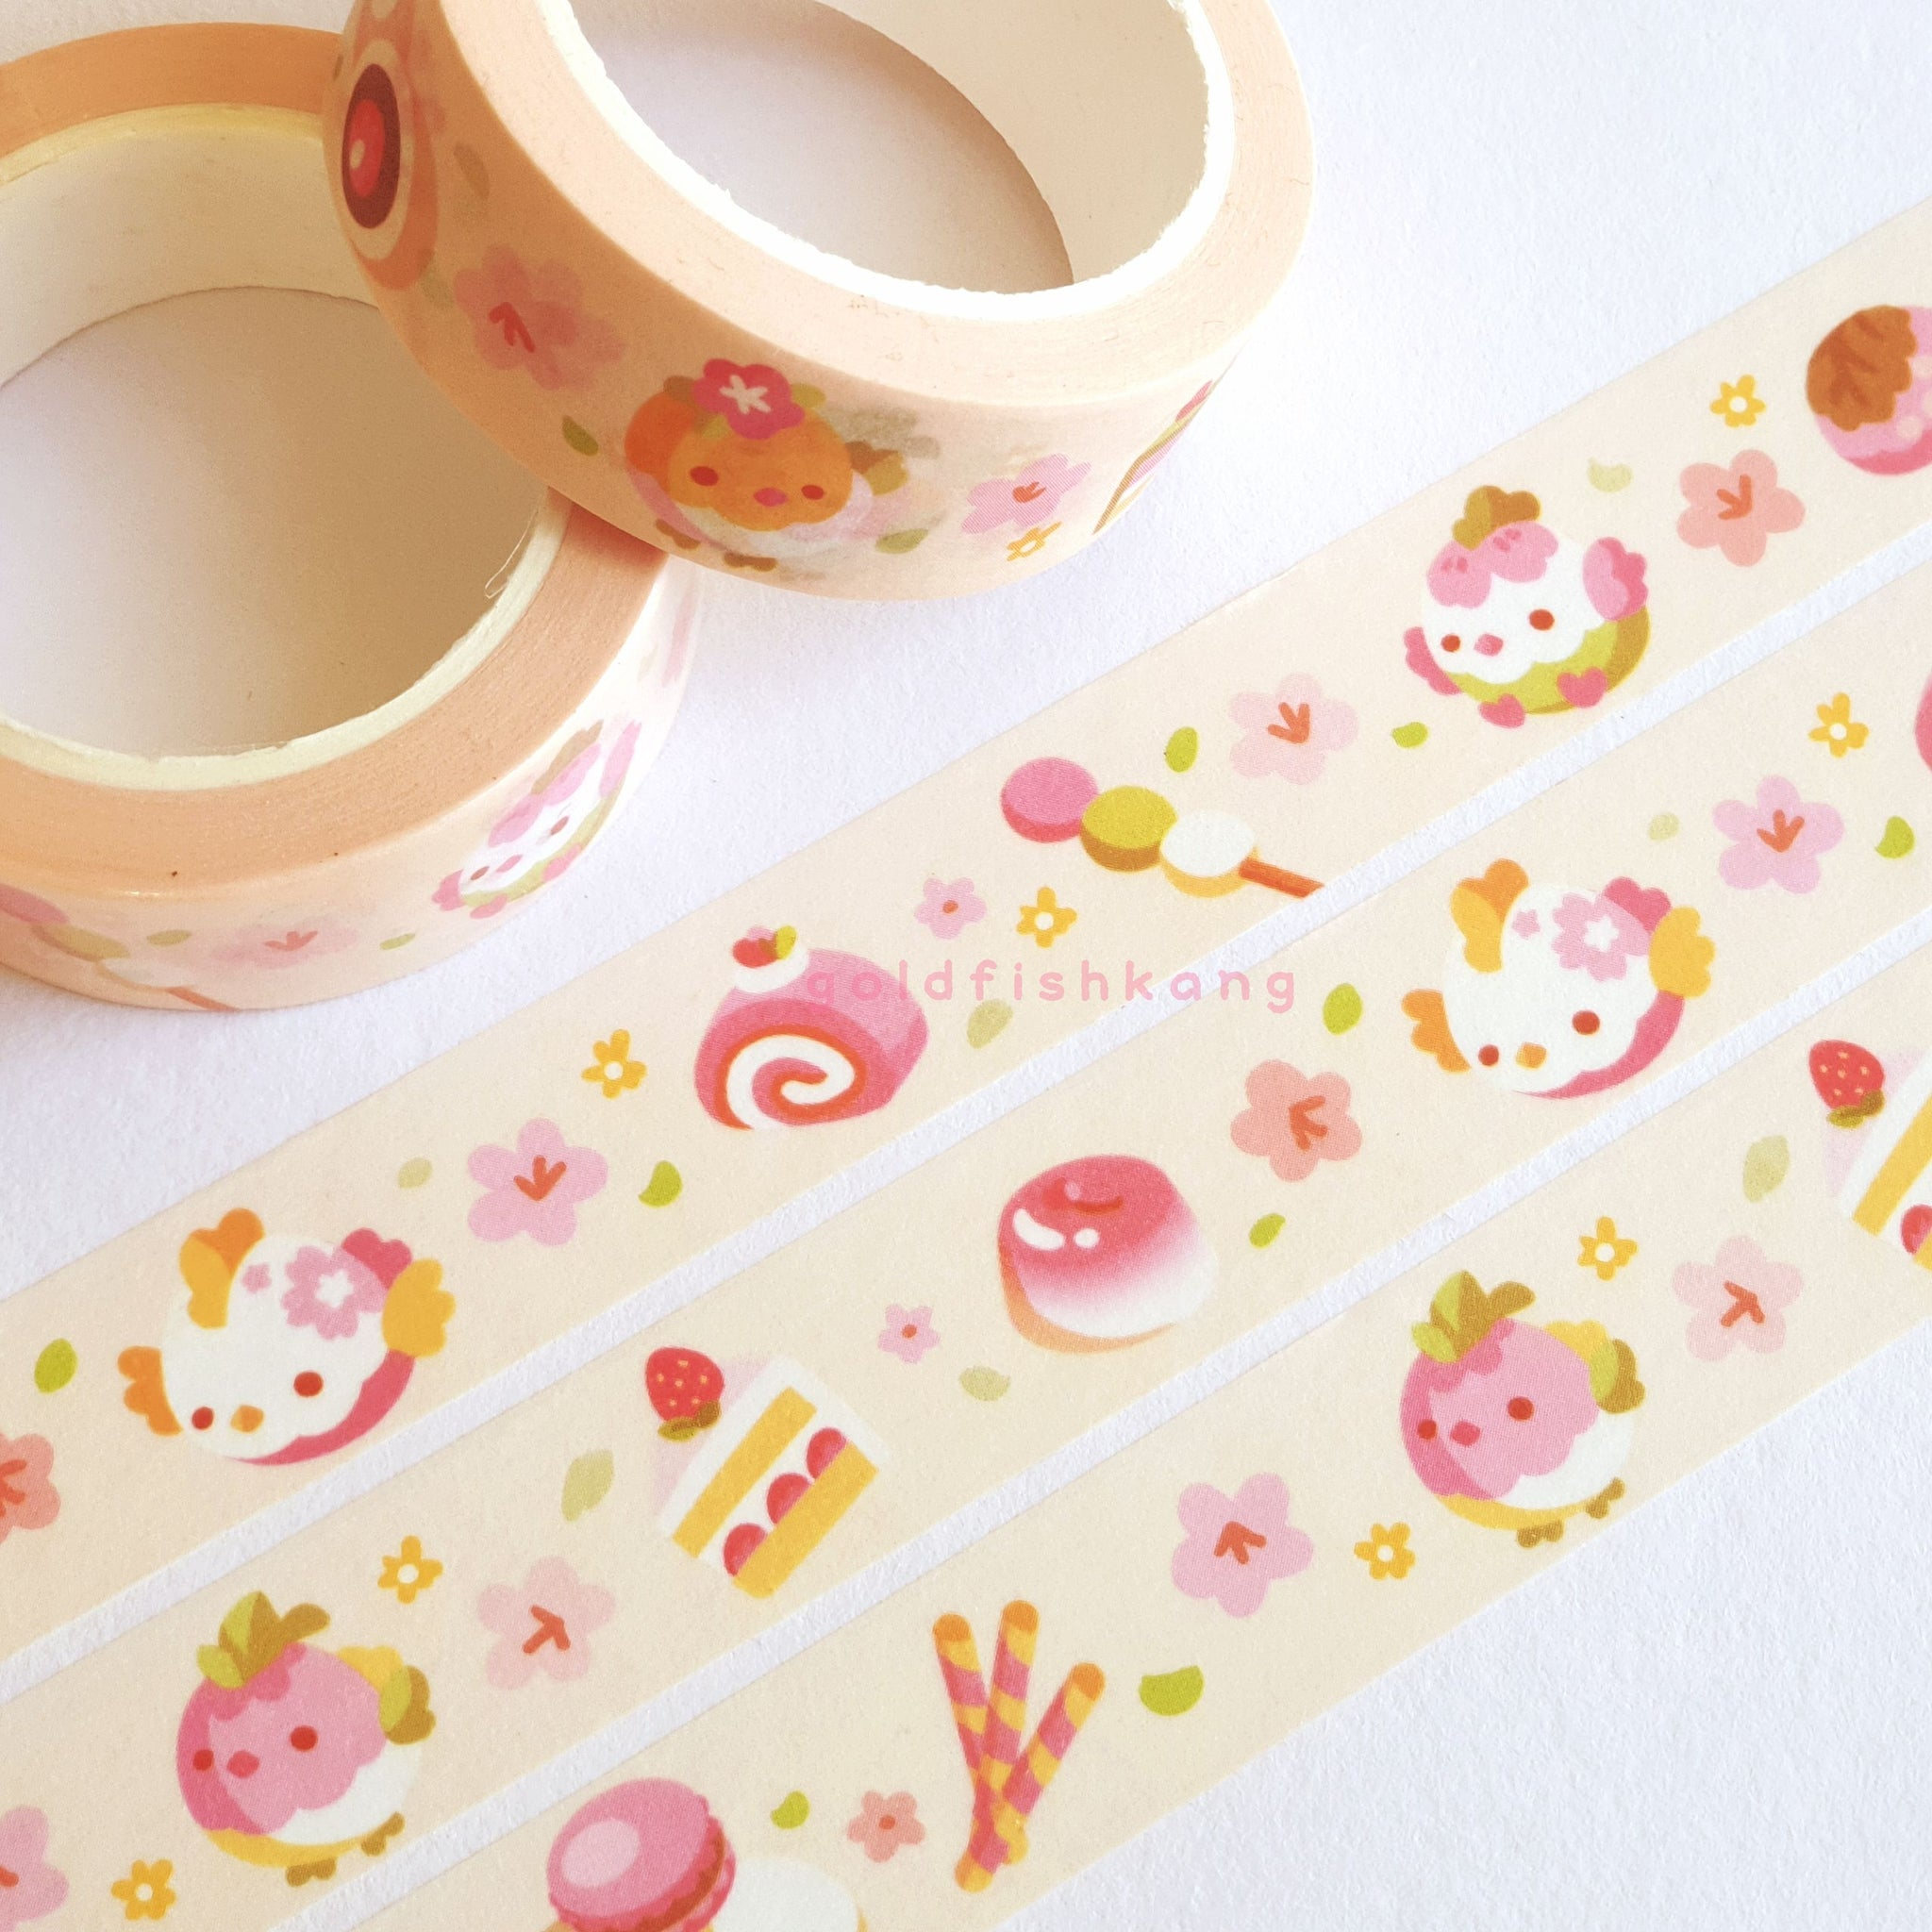 Spring Chickies Washi Tape - Goldfishkang